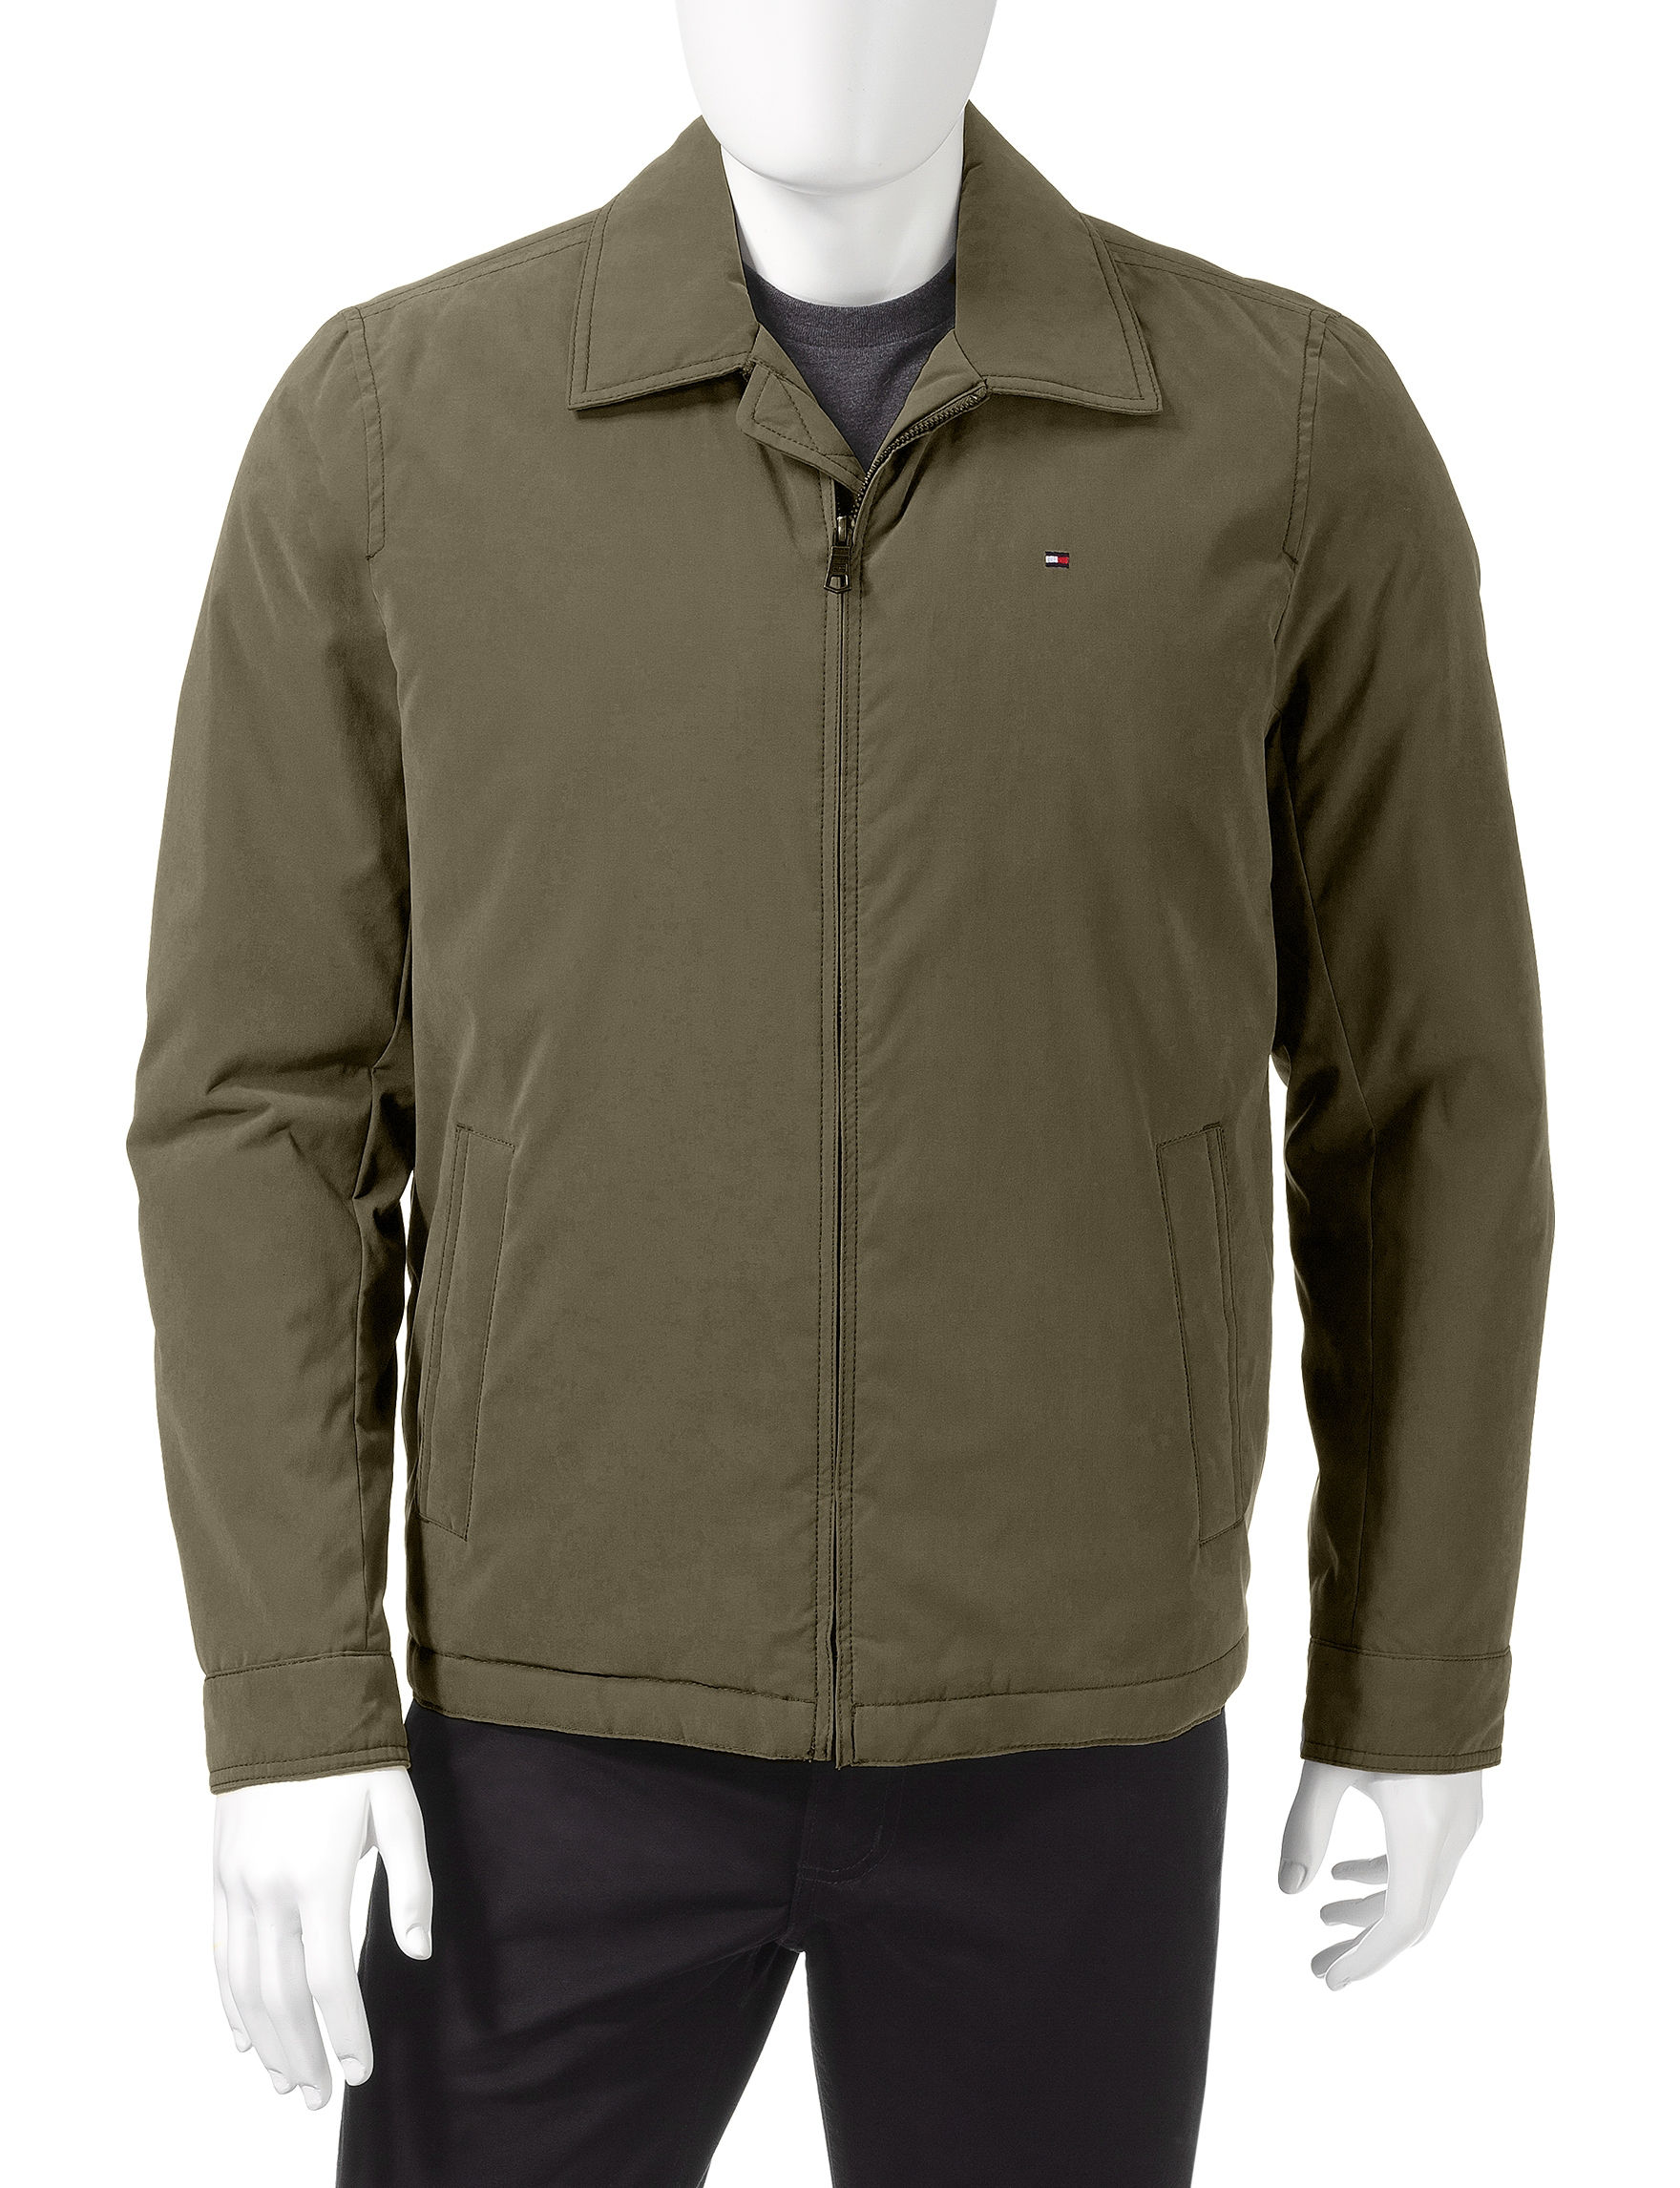 Tommy Hilfiger Olive Insulated Jackets